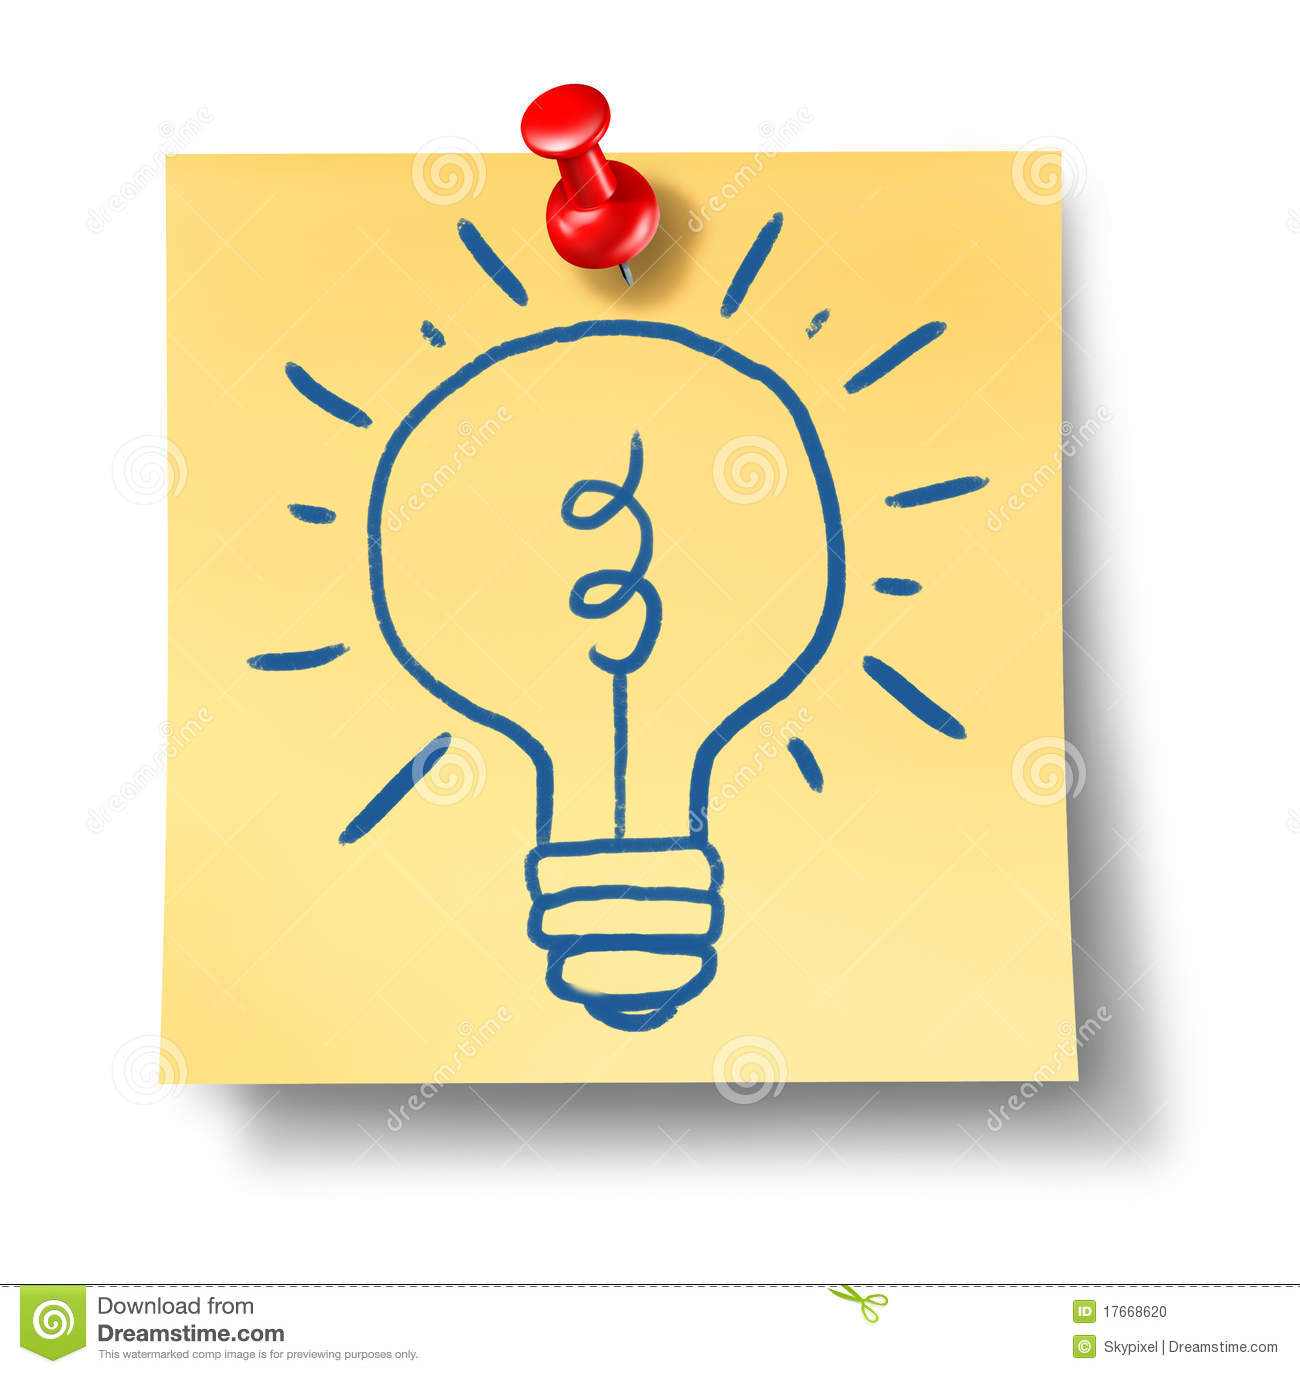 Ideas inspiration creativity light bulb office not stock for Innovative product ideas not yet invented